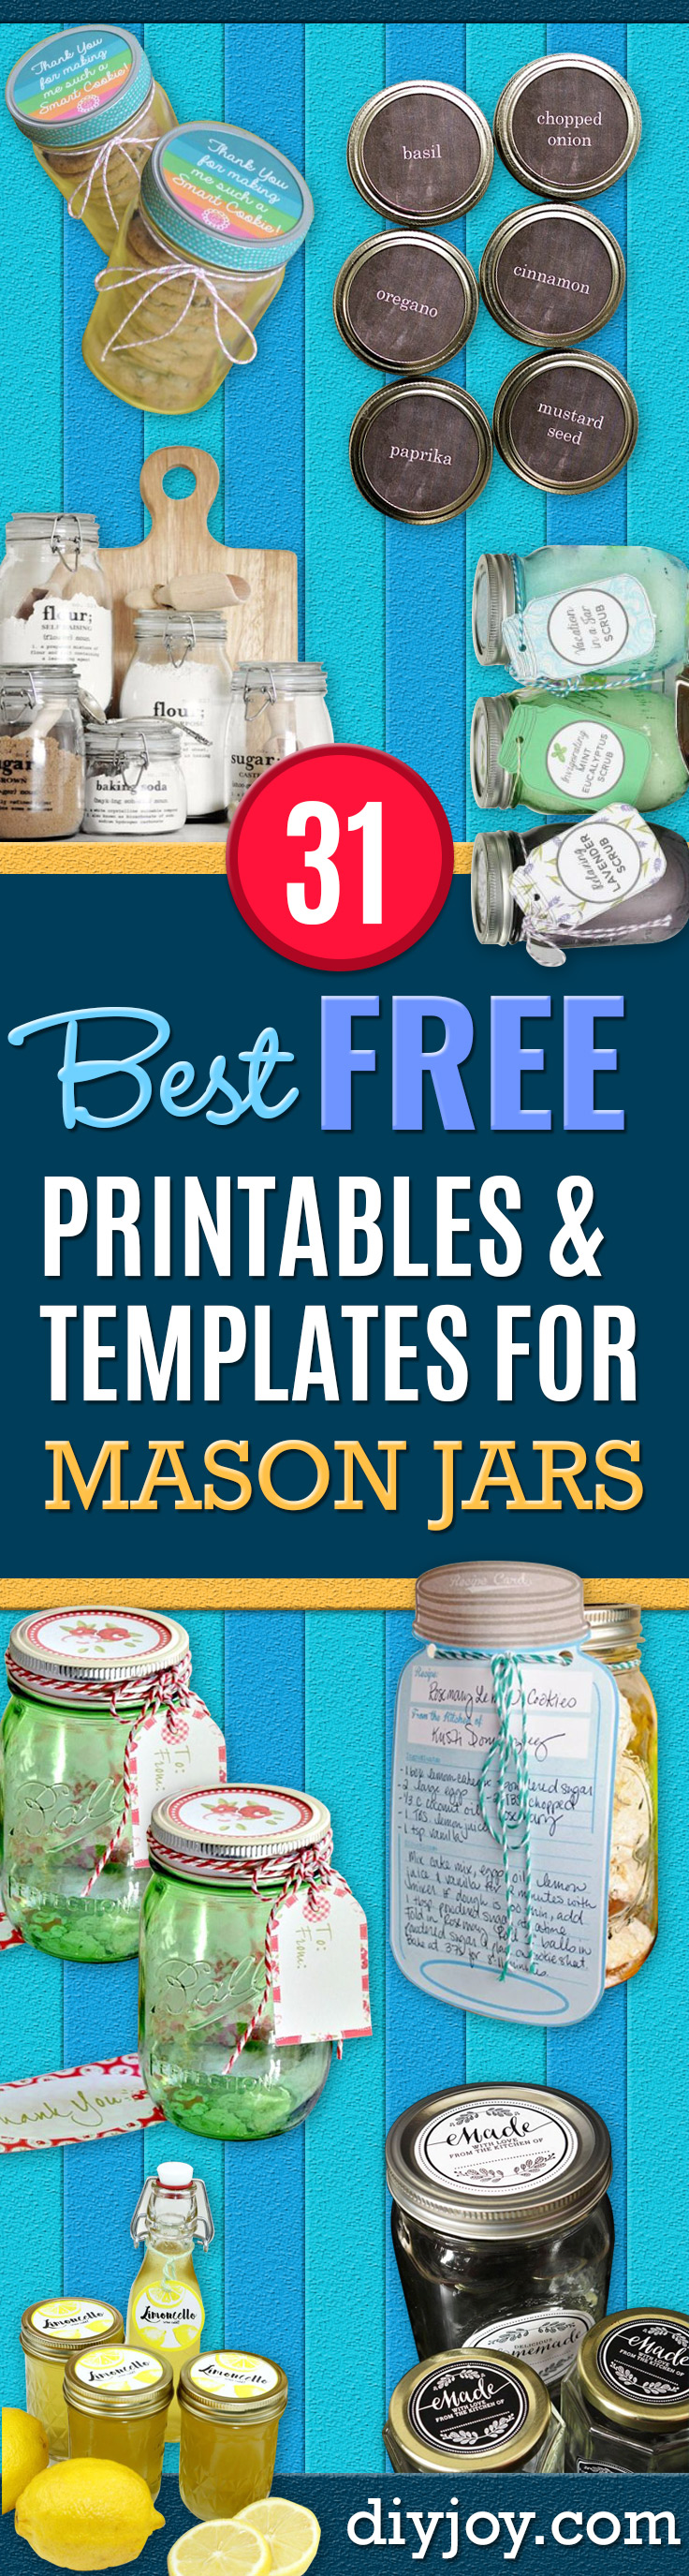 free printables for jars - mason jar printables free- printable tags and Printable Clip Art for Fun Mason Jar Gifts and Organization - Sugar scrub, Teacher Gifts, Valentines, Cookie Mixes, Party Favors